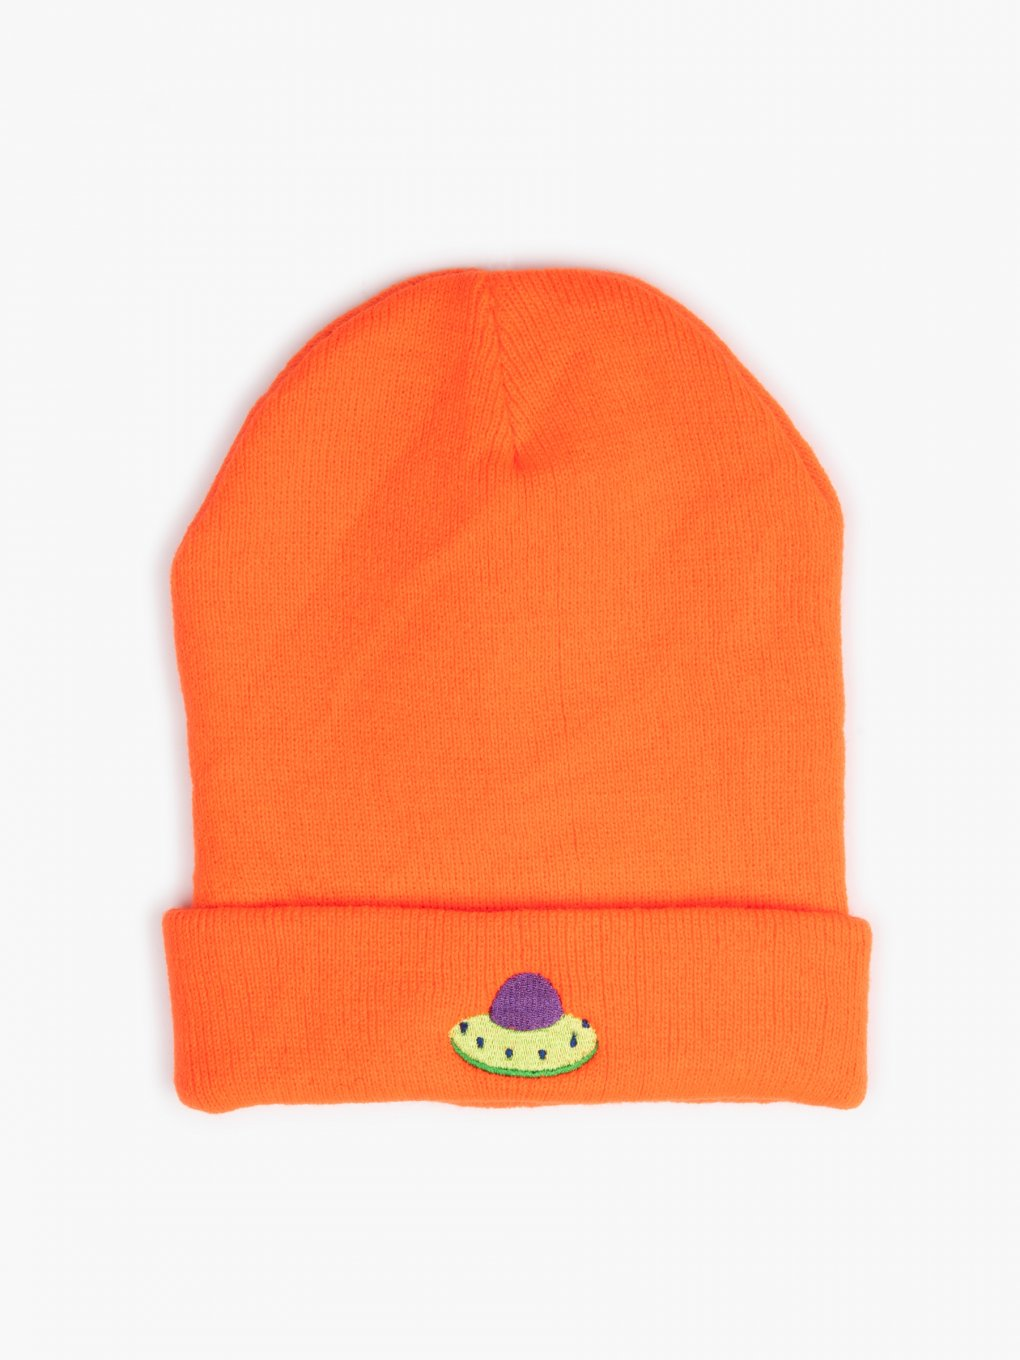 Beanie with embro